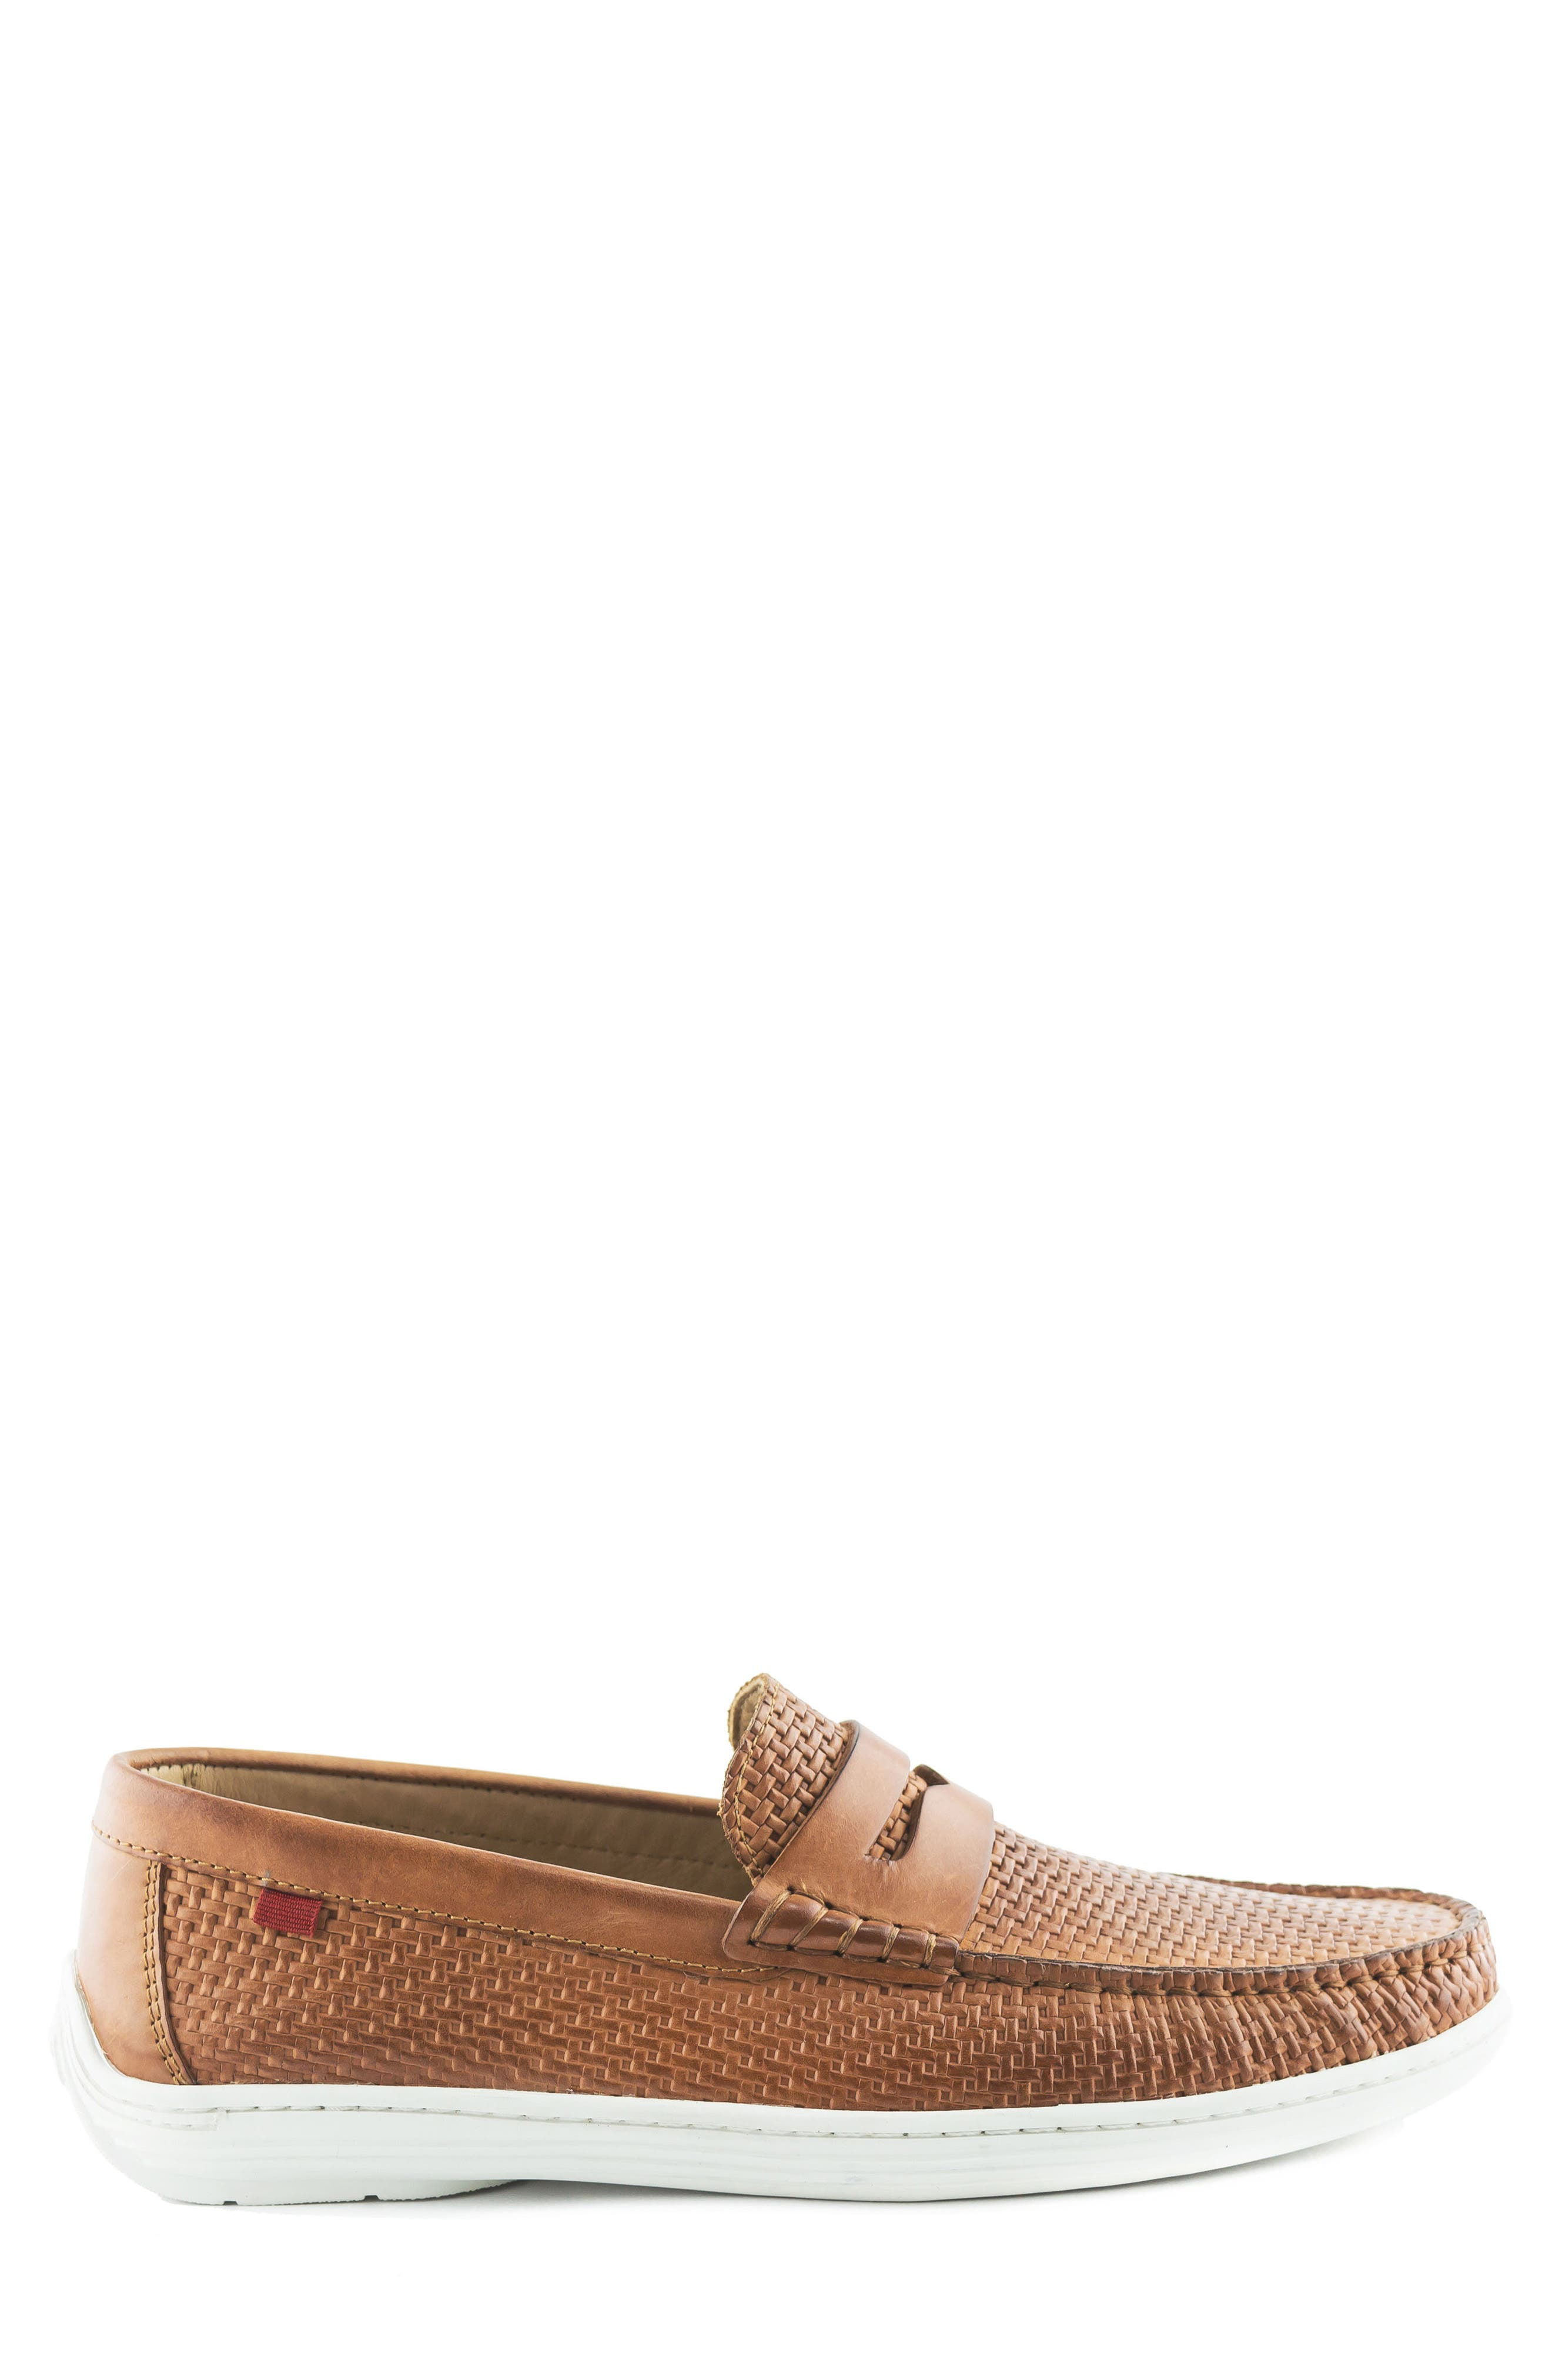 Atlantic Penny Loafer,                             Alternate thumbnail 25, color,